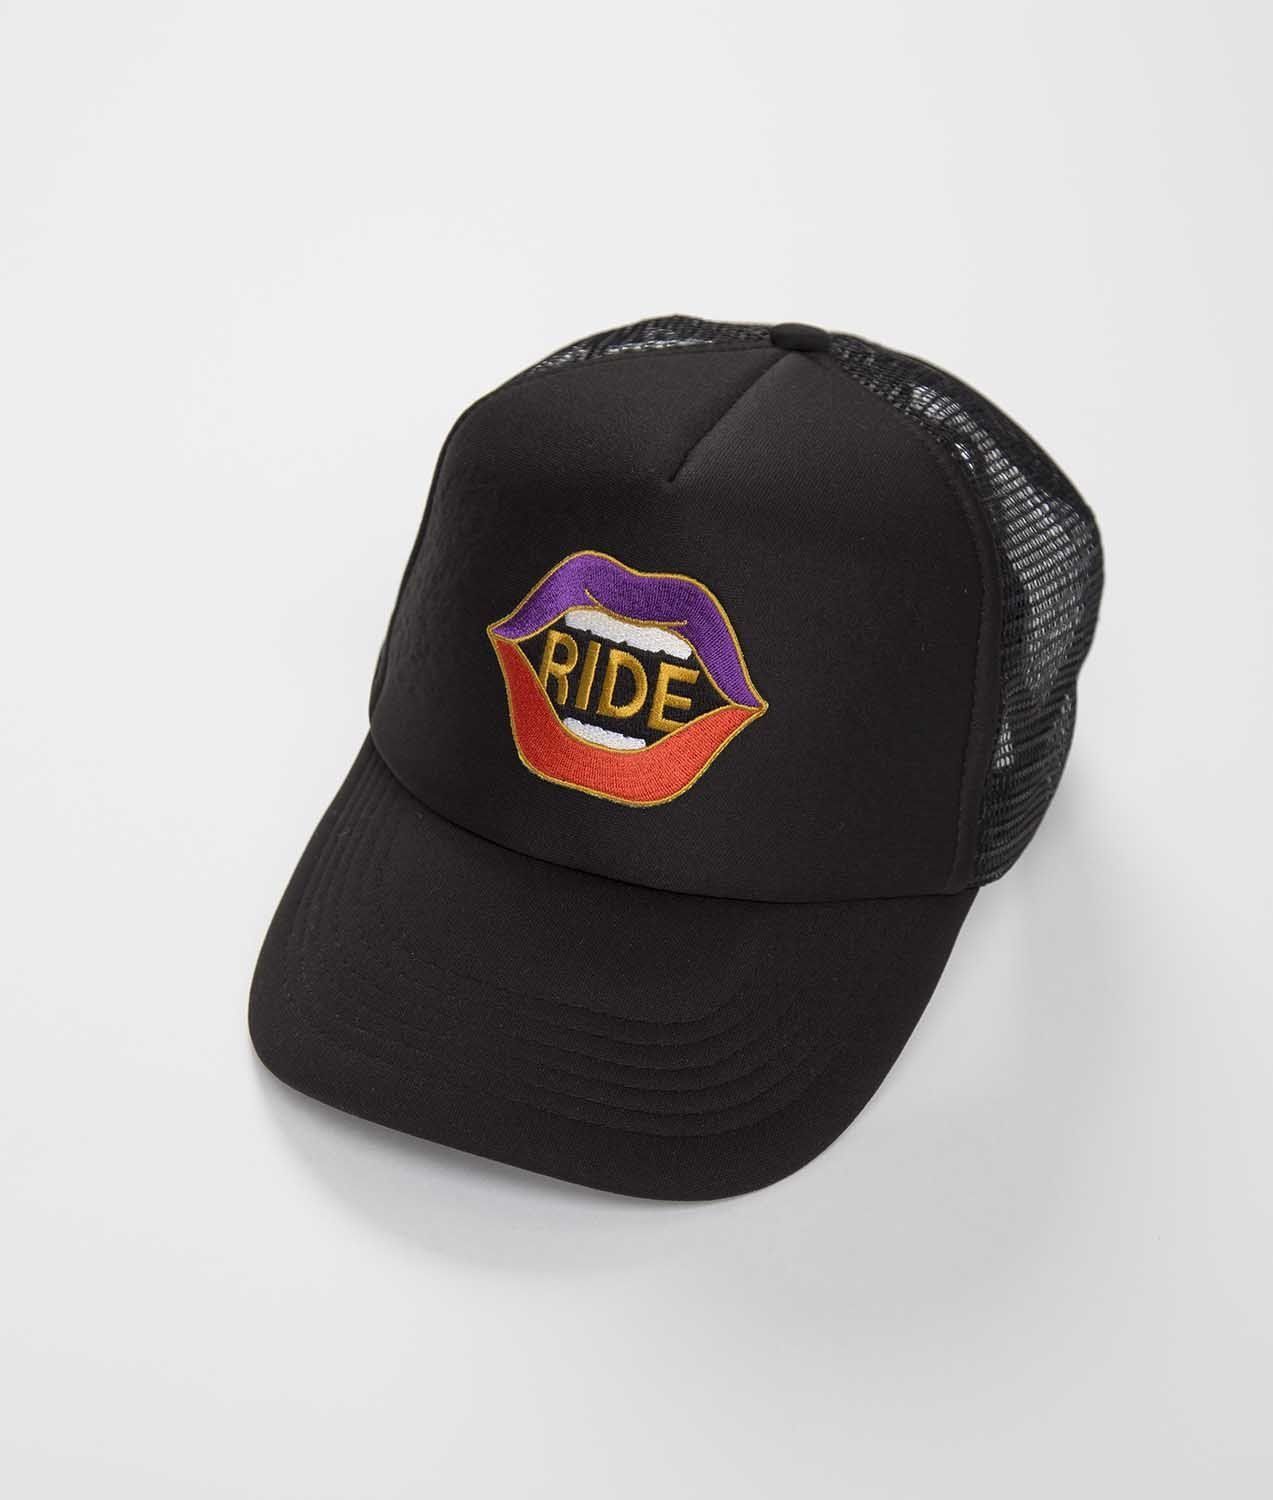 Eudoxie - Eudoxie Ride Cap - Caps - Salt Flats Clothing